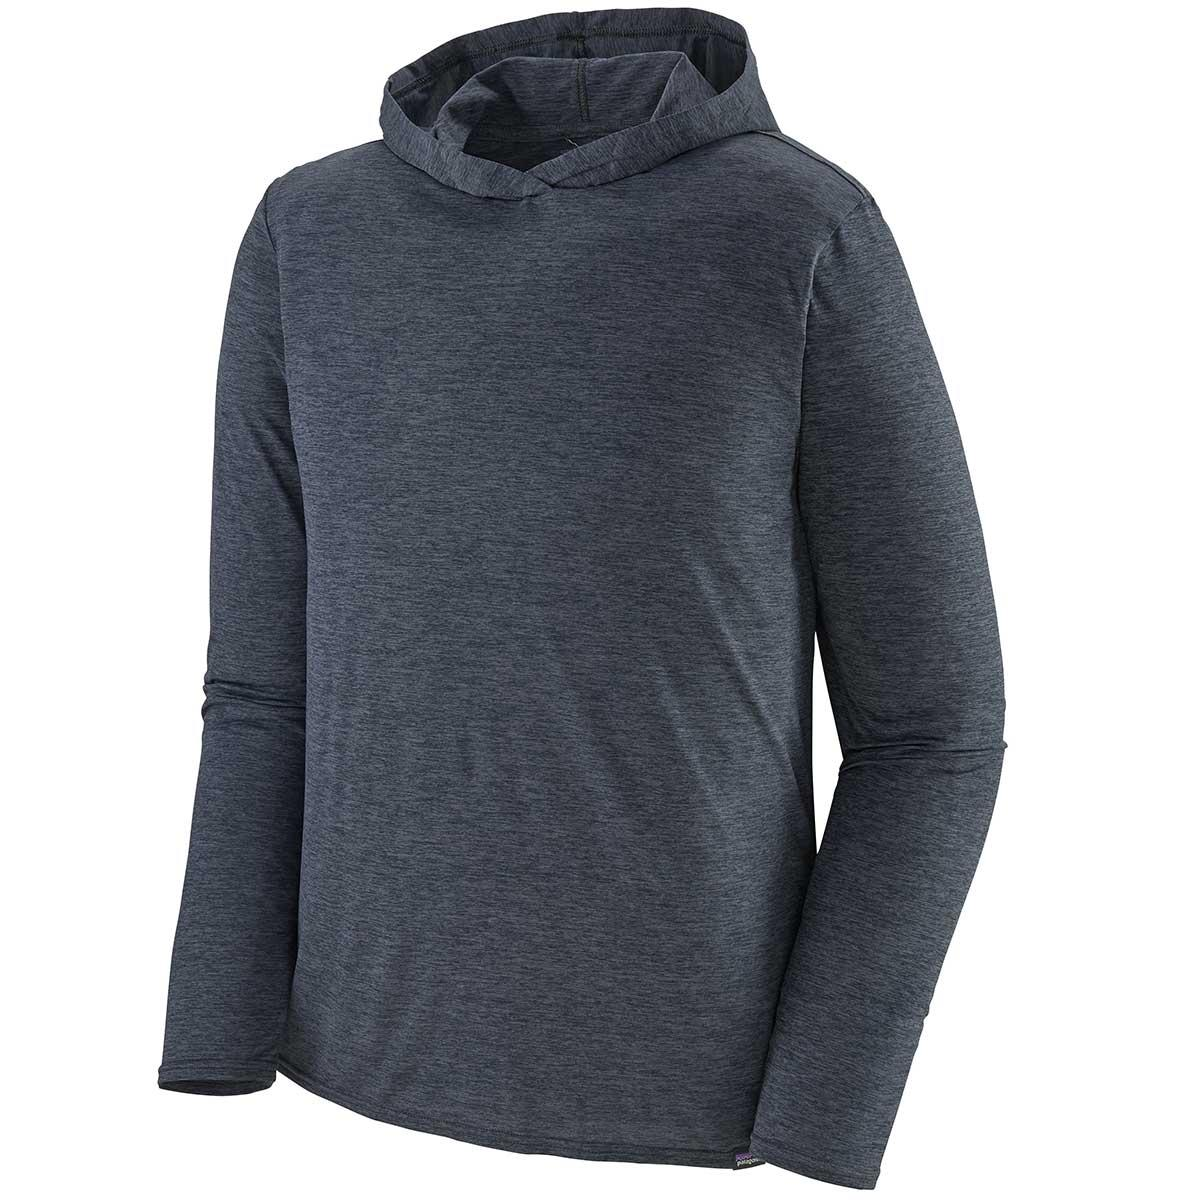 Patagonia men's Capilene Cool Daily Hoody in Smolder Blue and Light Blue X-Dye main view